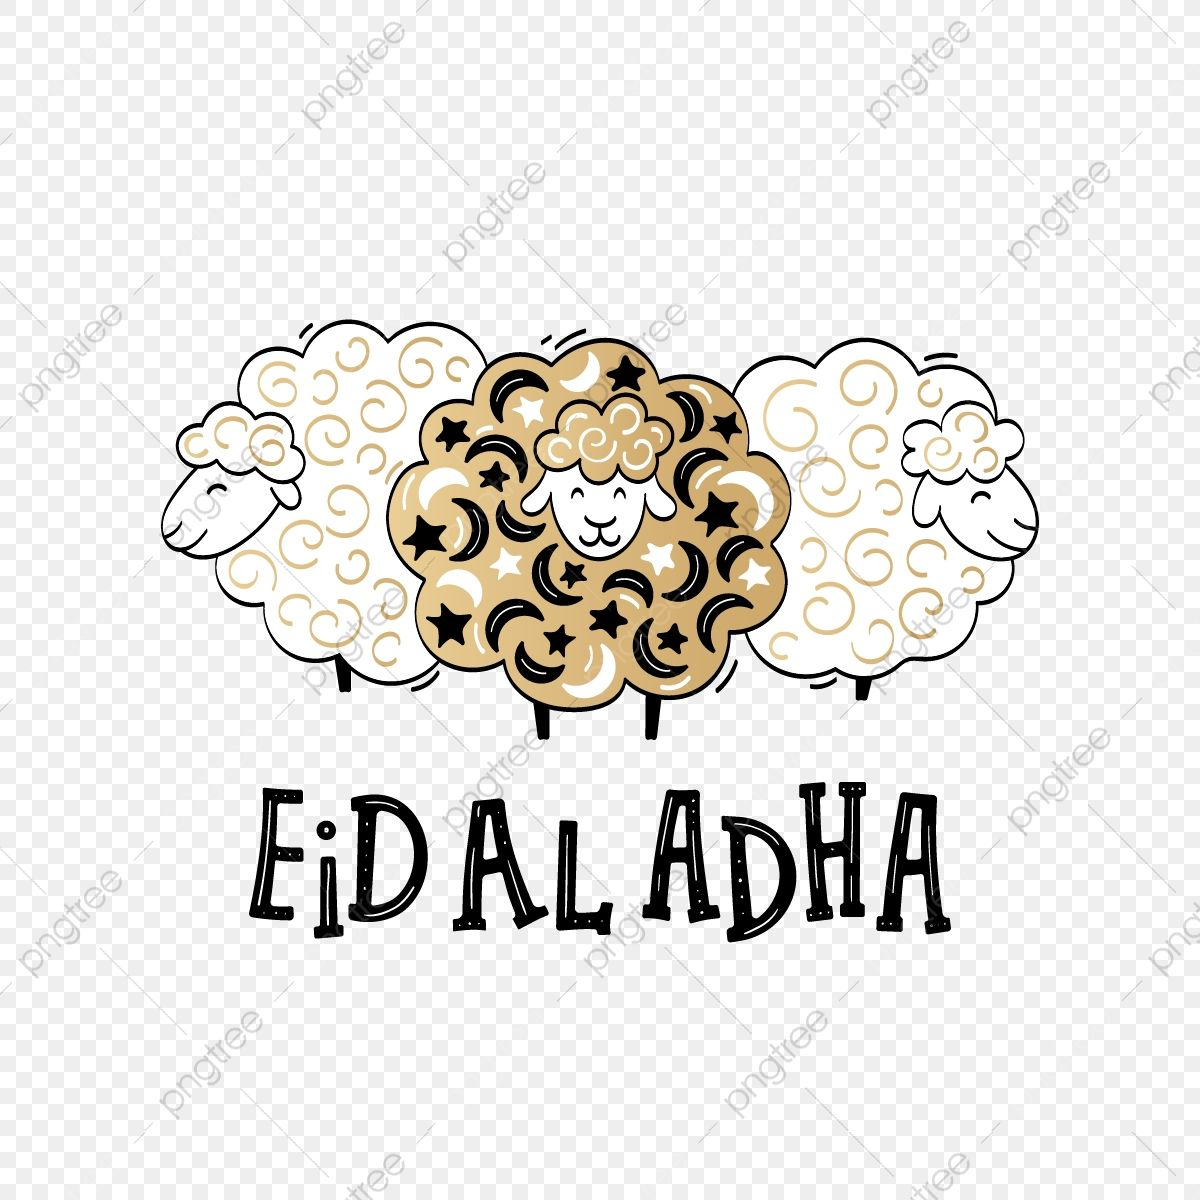 Eid Al Adha Festival Poster With Lettering And Sheeps In Cartoon Sheep Clipart Png Islamic Png And Vector With Transparent Background For Free Download Eid Stickers Eid Al Adha Eid Al